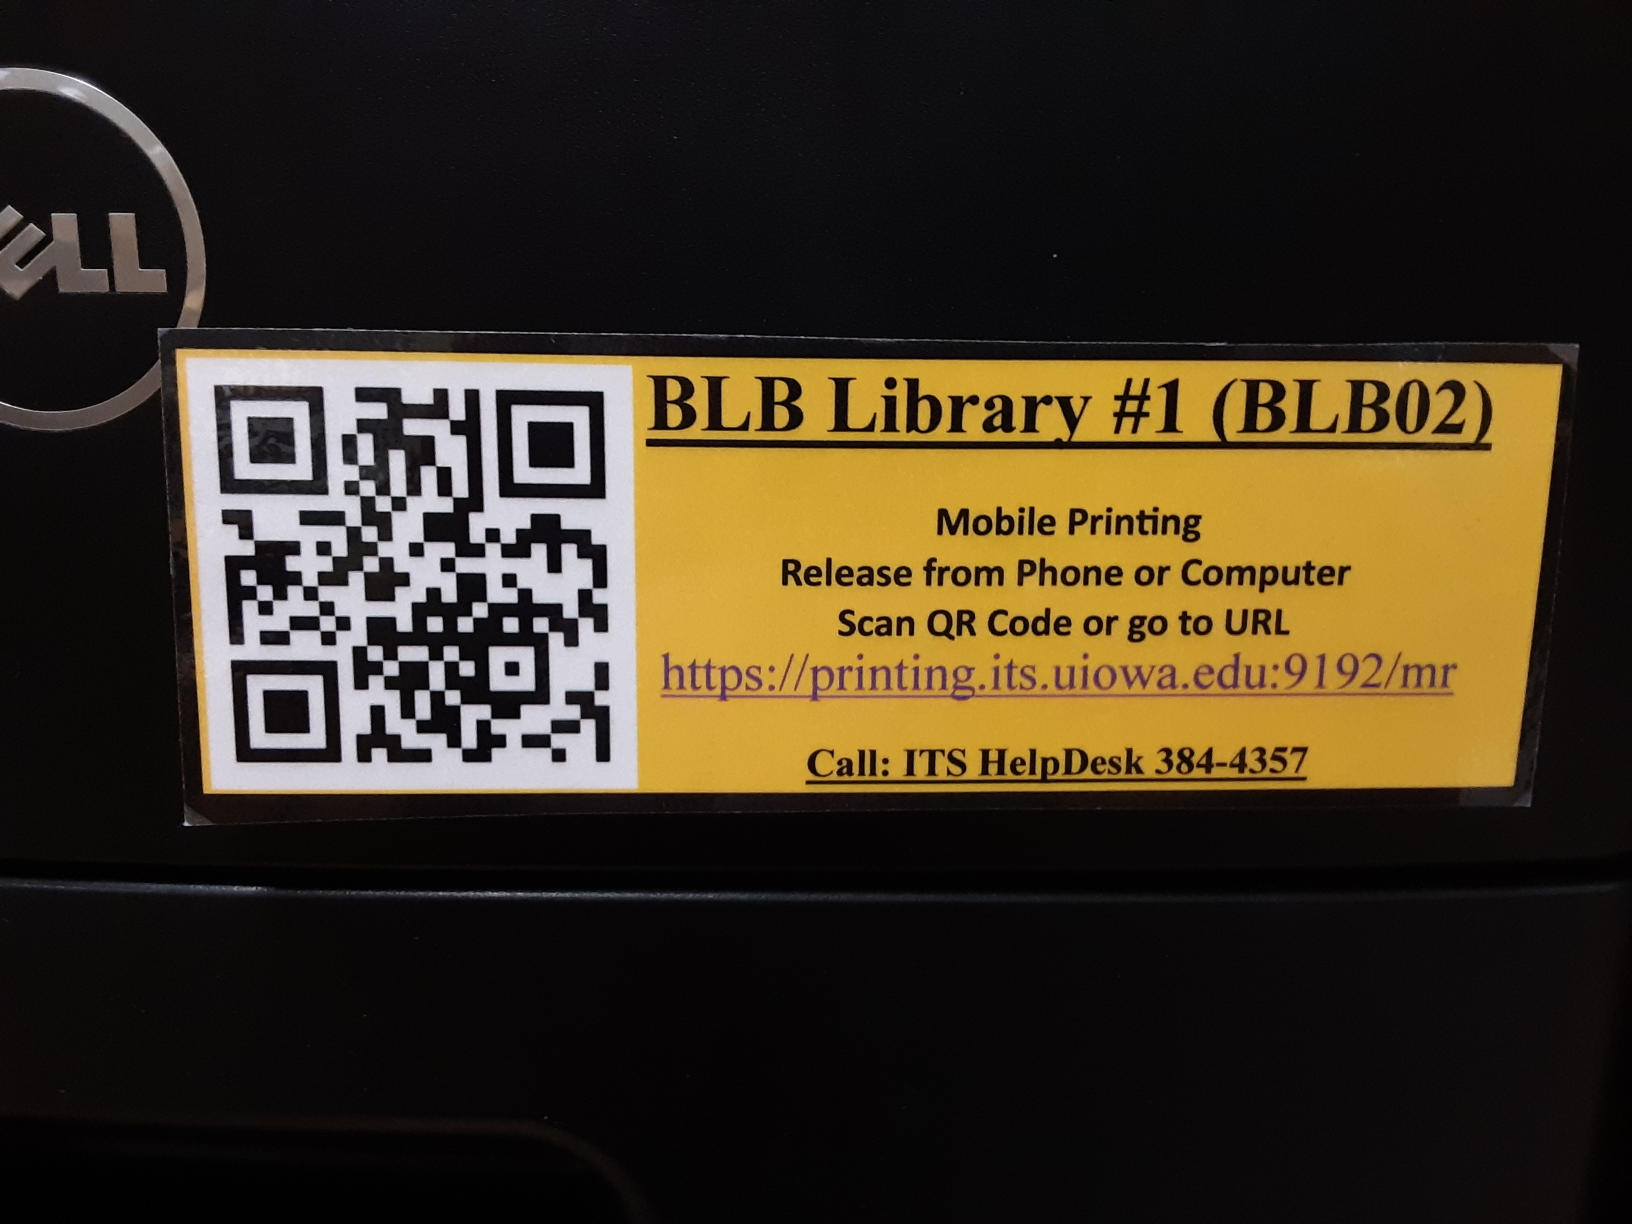 Image on Law Library Printer with QR Code